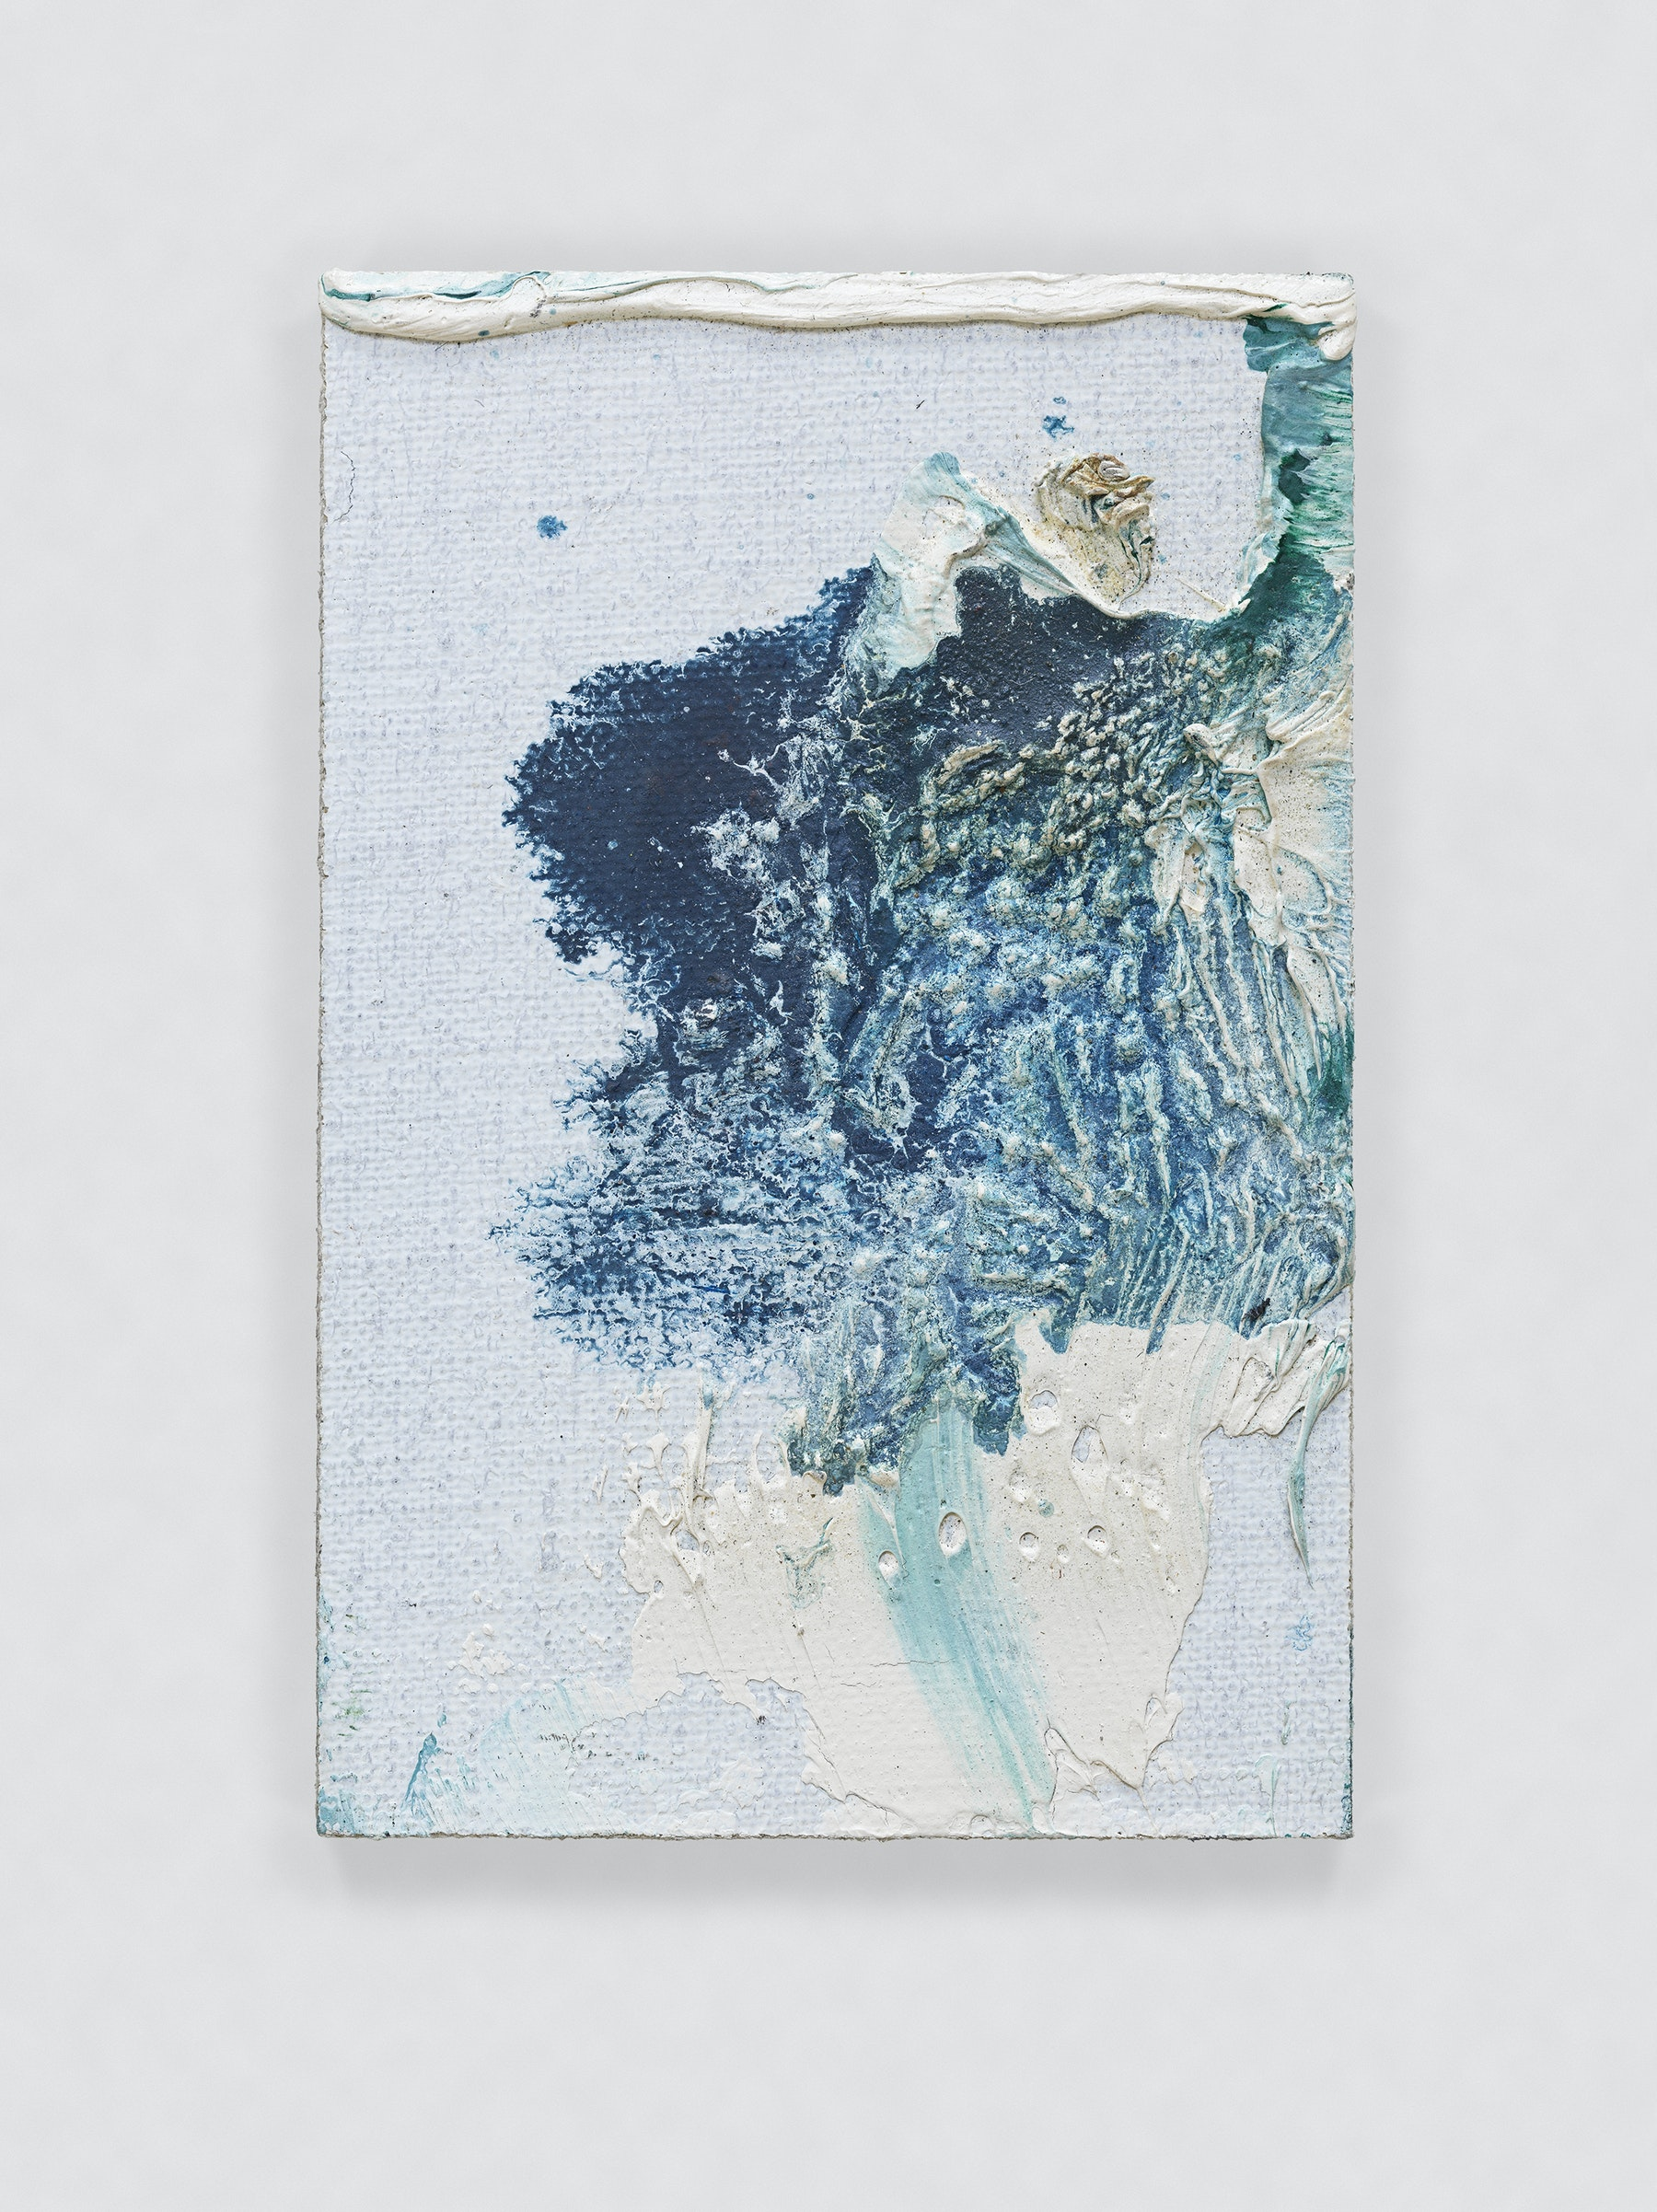 """Louise Fishman """"UNTITLED,"""" 2011 Oil on board 3 x 2"""" [HxW] (7.62 x 5.08 cm) Inventory #FIS134 Courtesy of the artist and Vielmetter Los Angeles Photo credit: Genevieve Hanson Signed and dated on verso"""